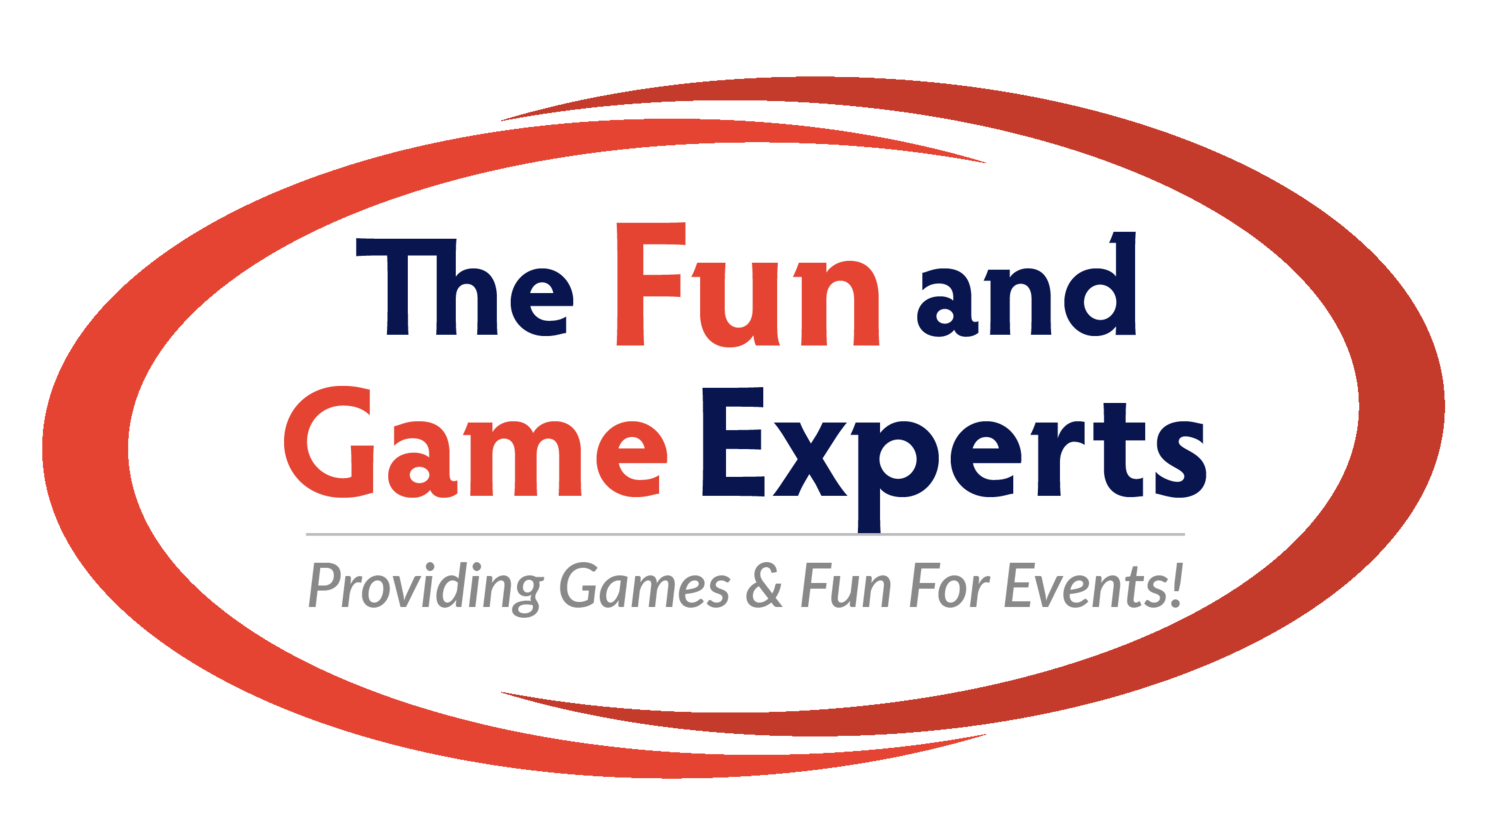 The Fun and Game Experts